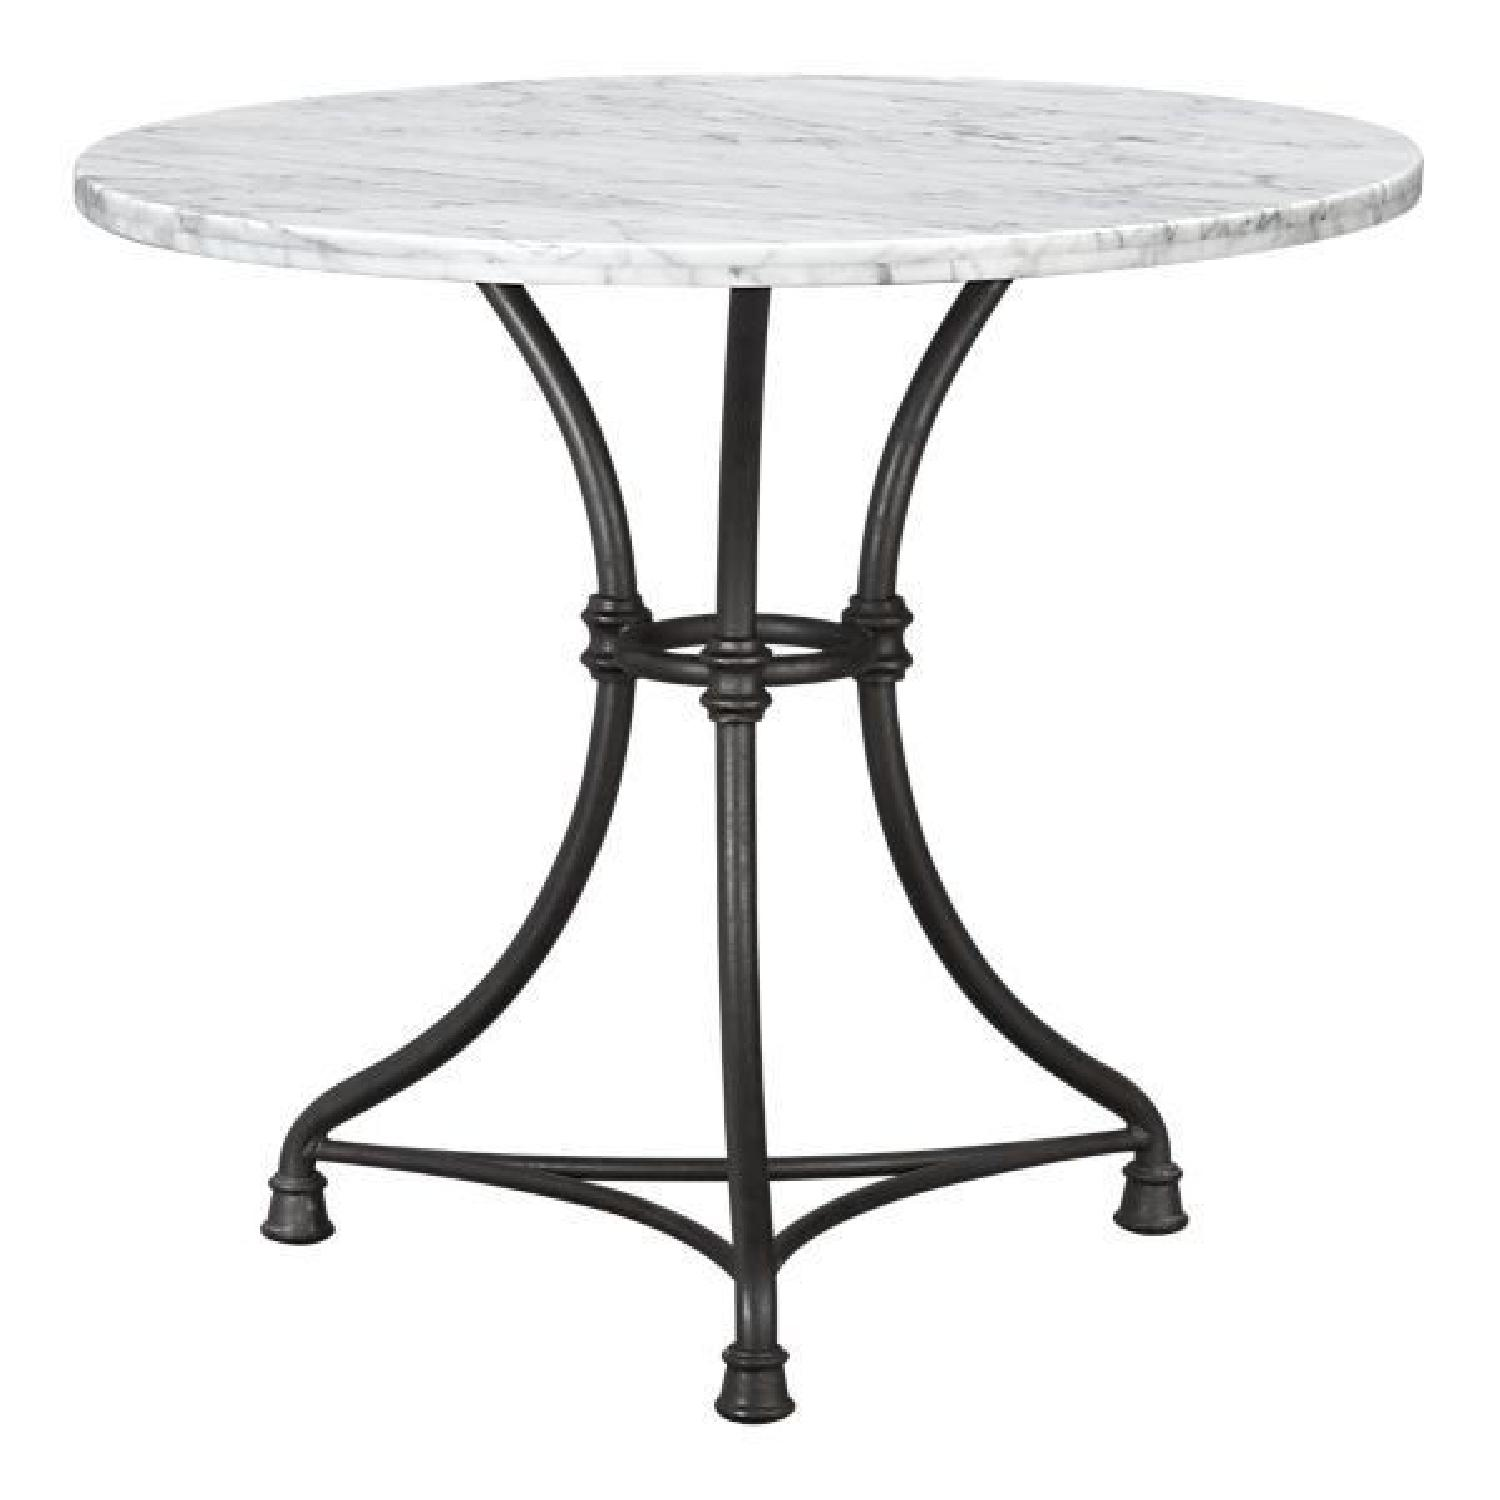 Crate & Barrel French Kitchen Round Bistro Table - image-0